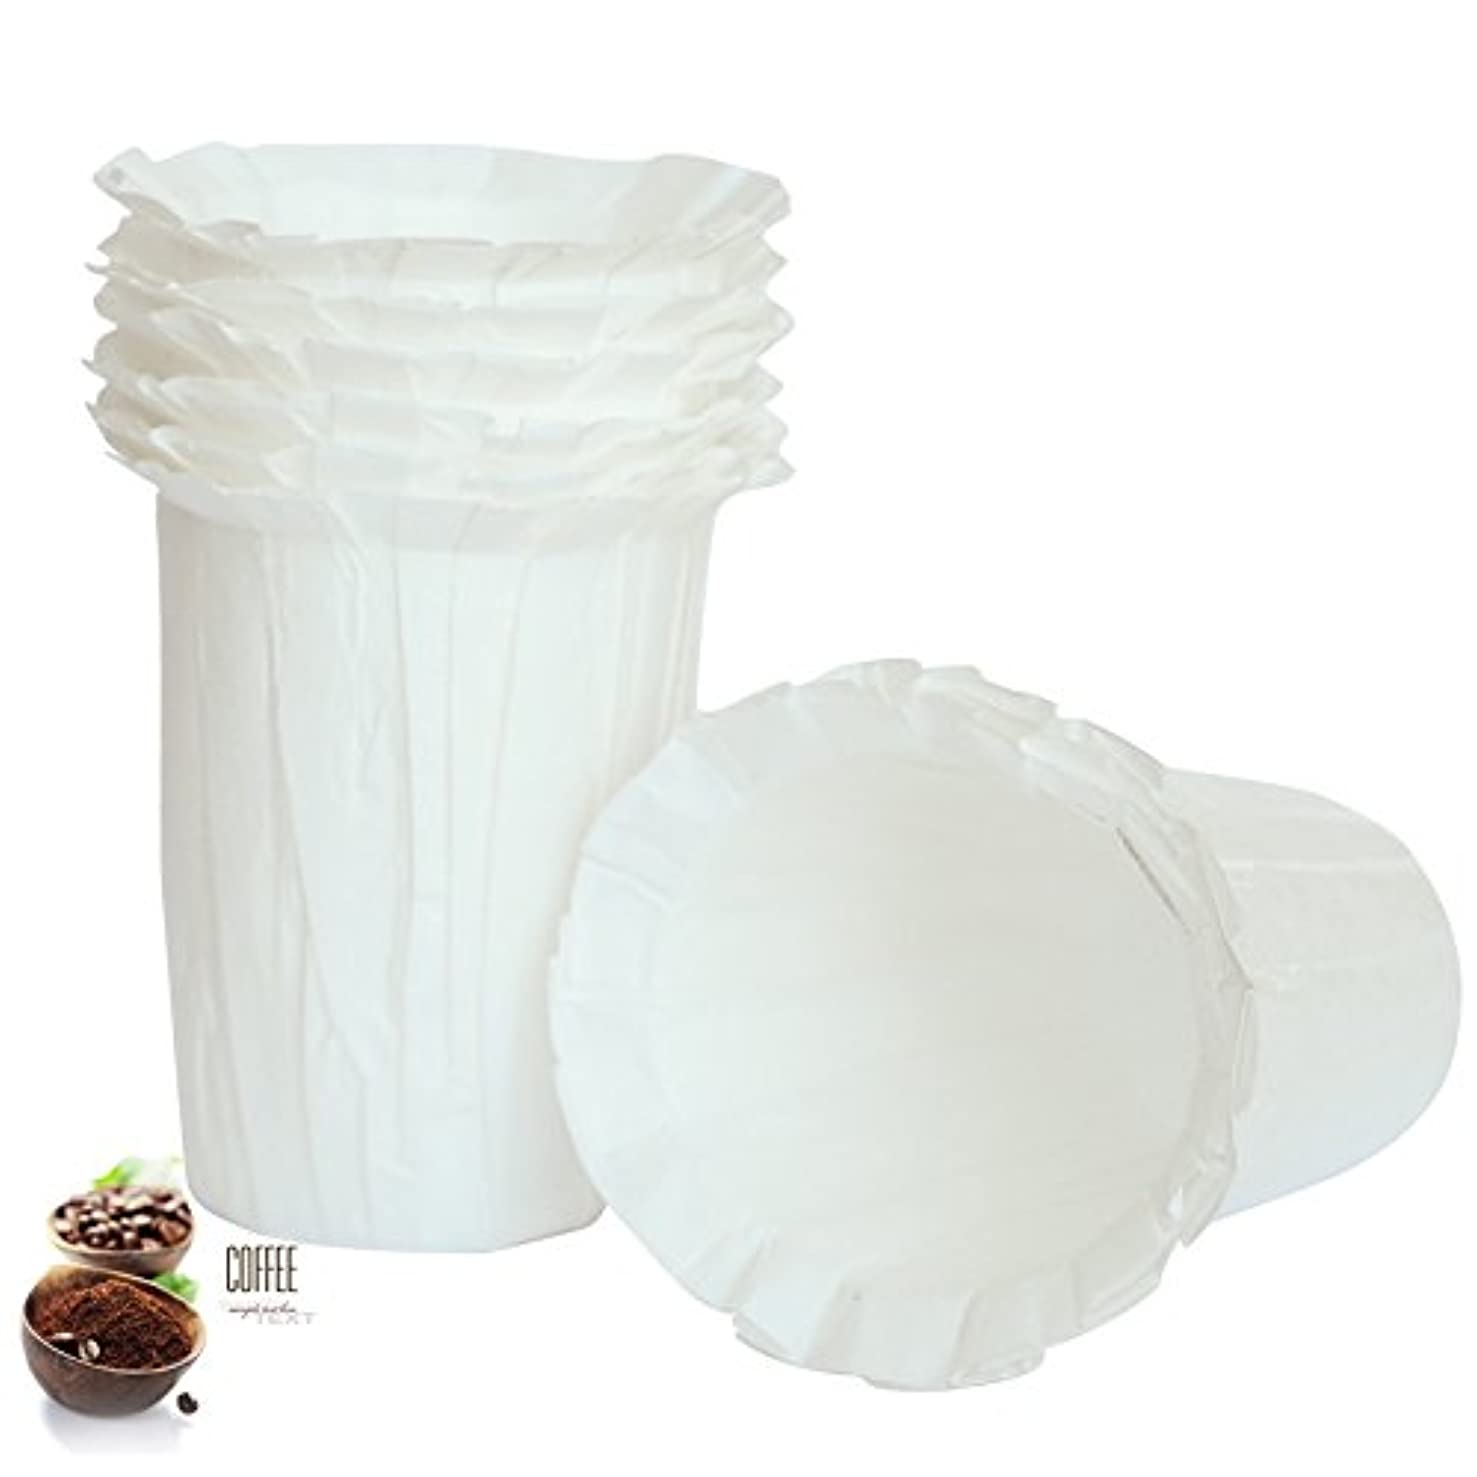 BRBHOM Disposable Filters Paper K Carafe Filter Cups K Carafe Pods Compatible Paper-(100 Filters) (White) (White/Large)